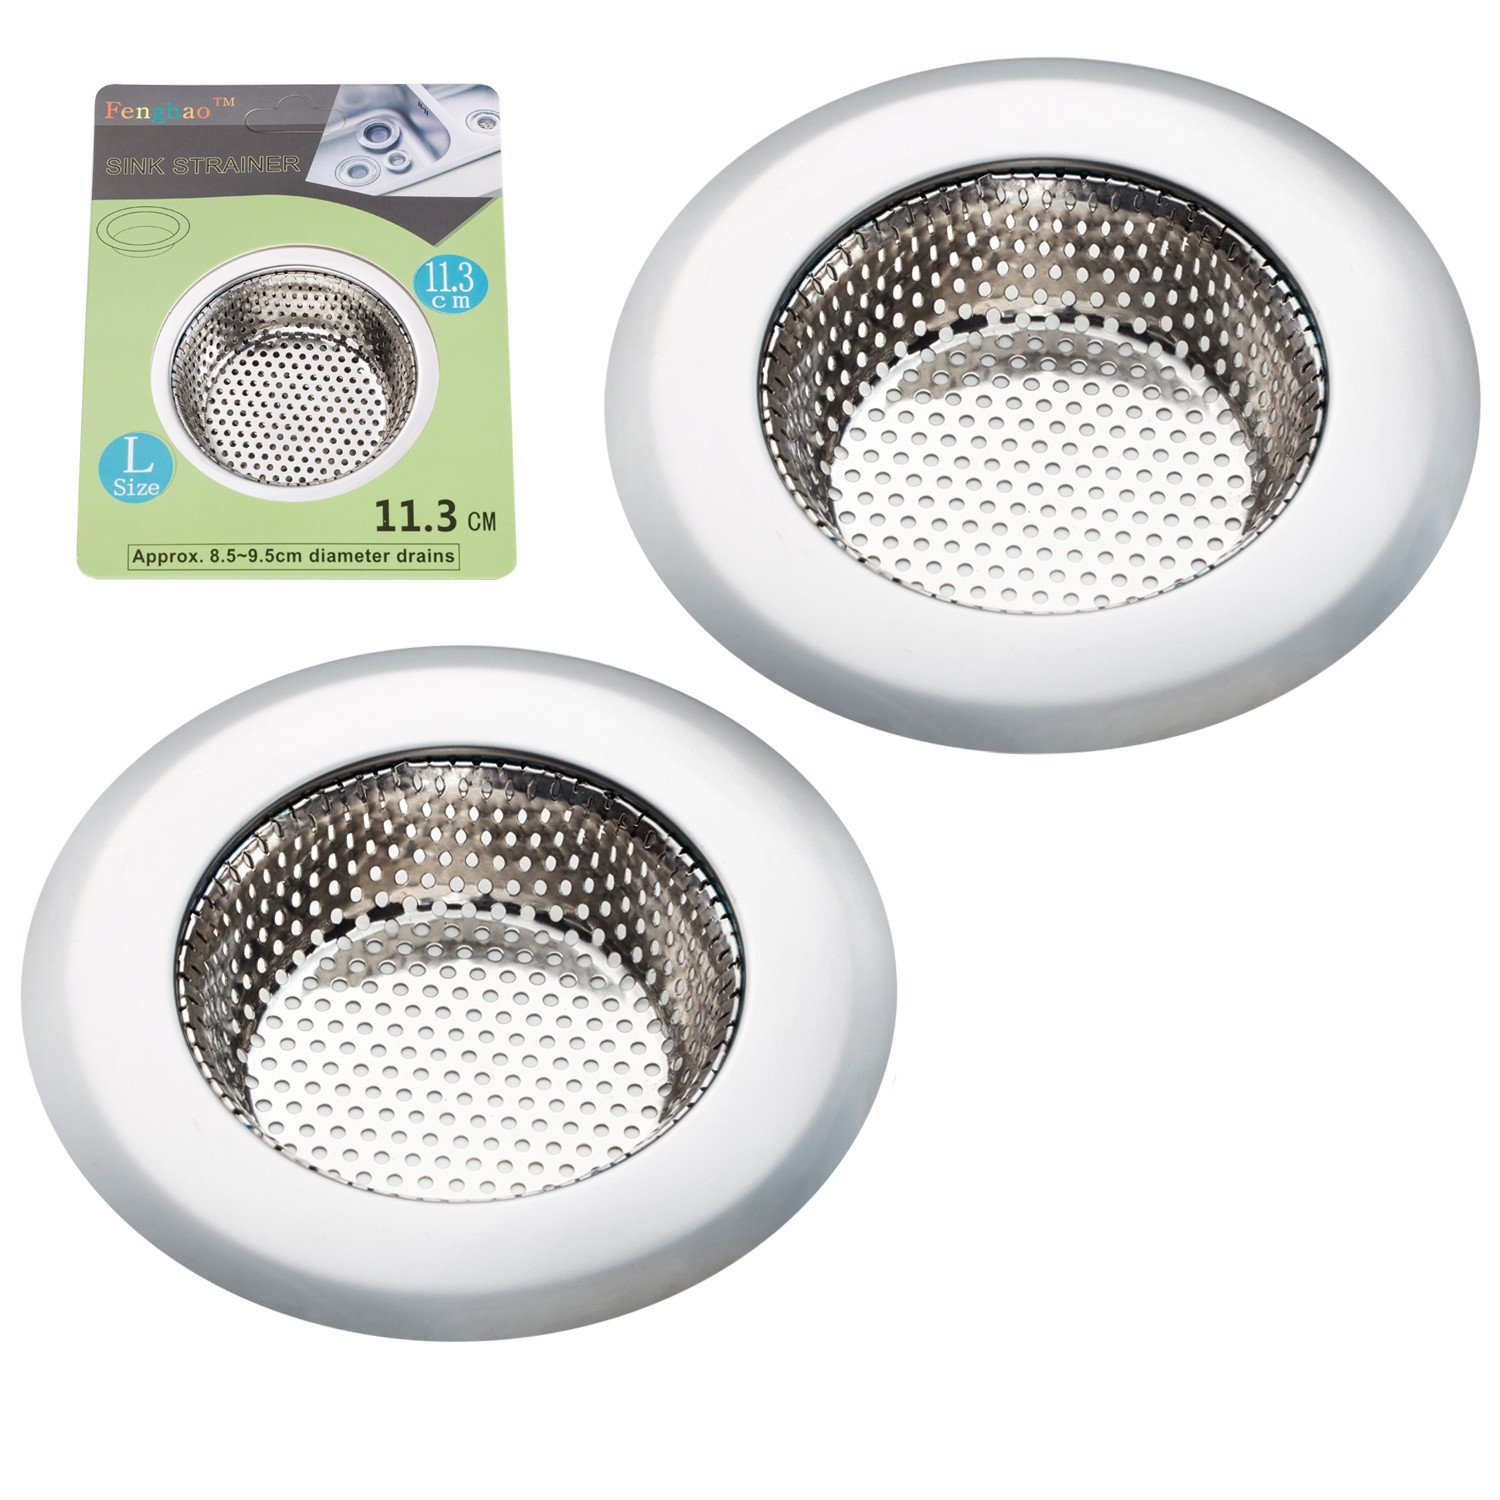 Fengbao 4.5-Inch Kitchen Sink Strainer Basket, 2-Pack